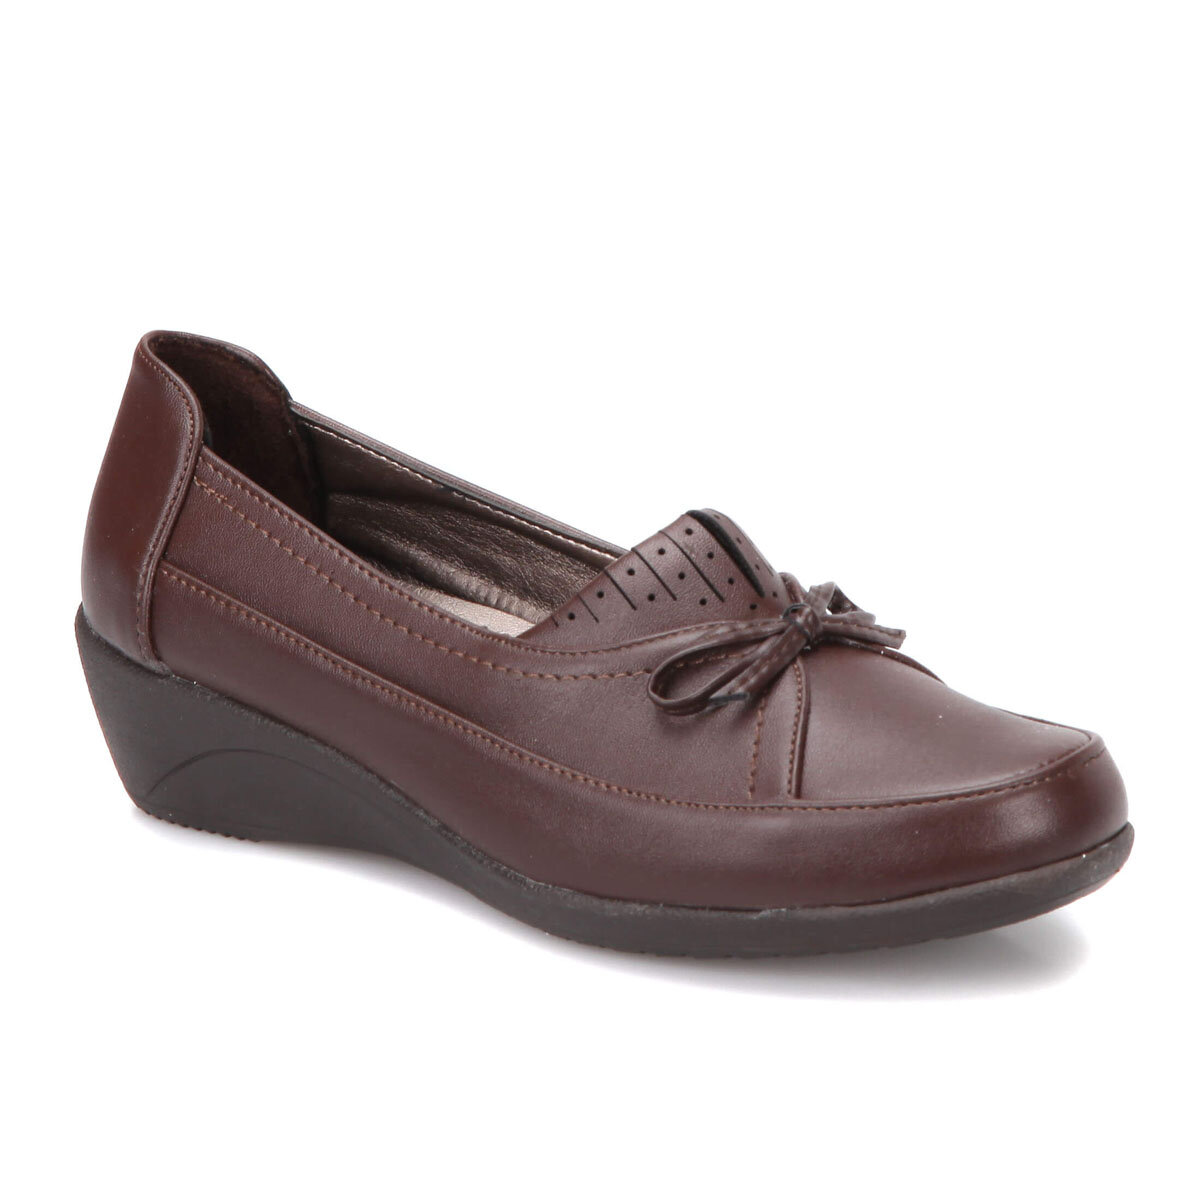 FLO 72.158022.Z Brown Women 'S Comfort Shoes Polaris